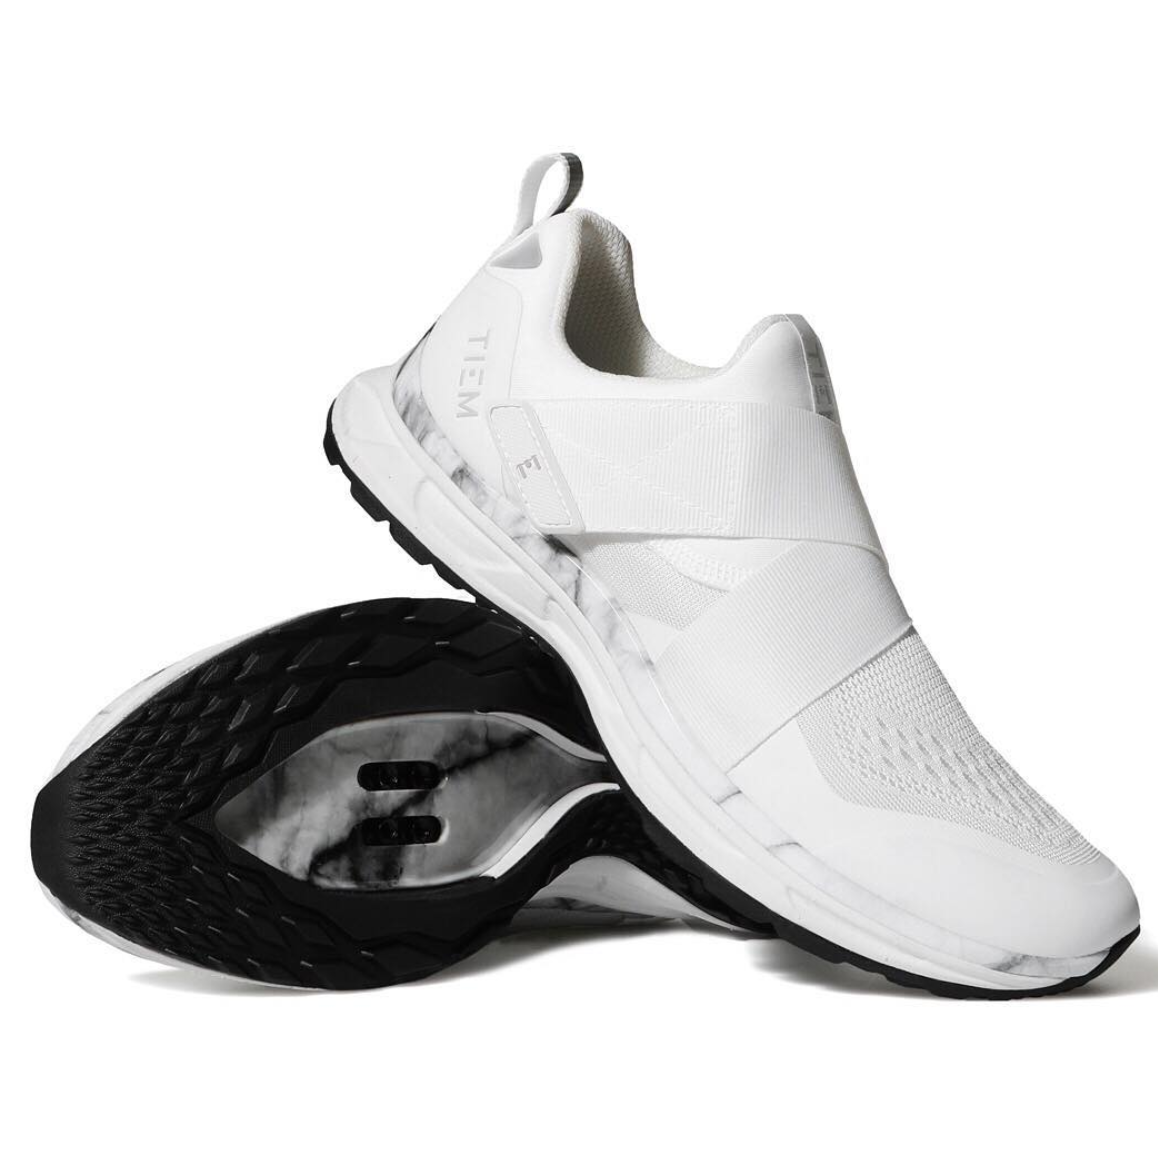 Spin shoes, Cycling shoes, Womens